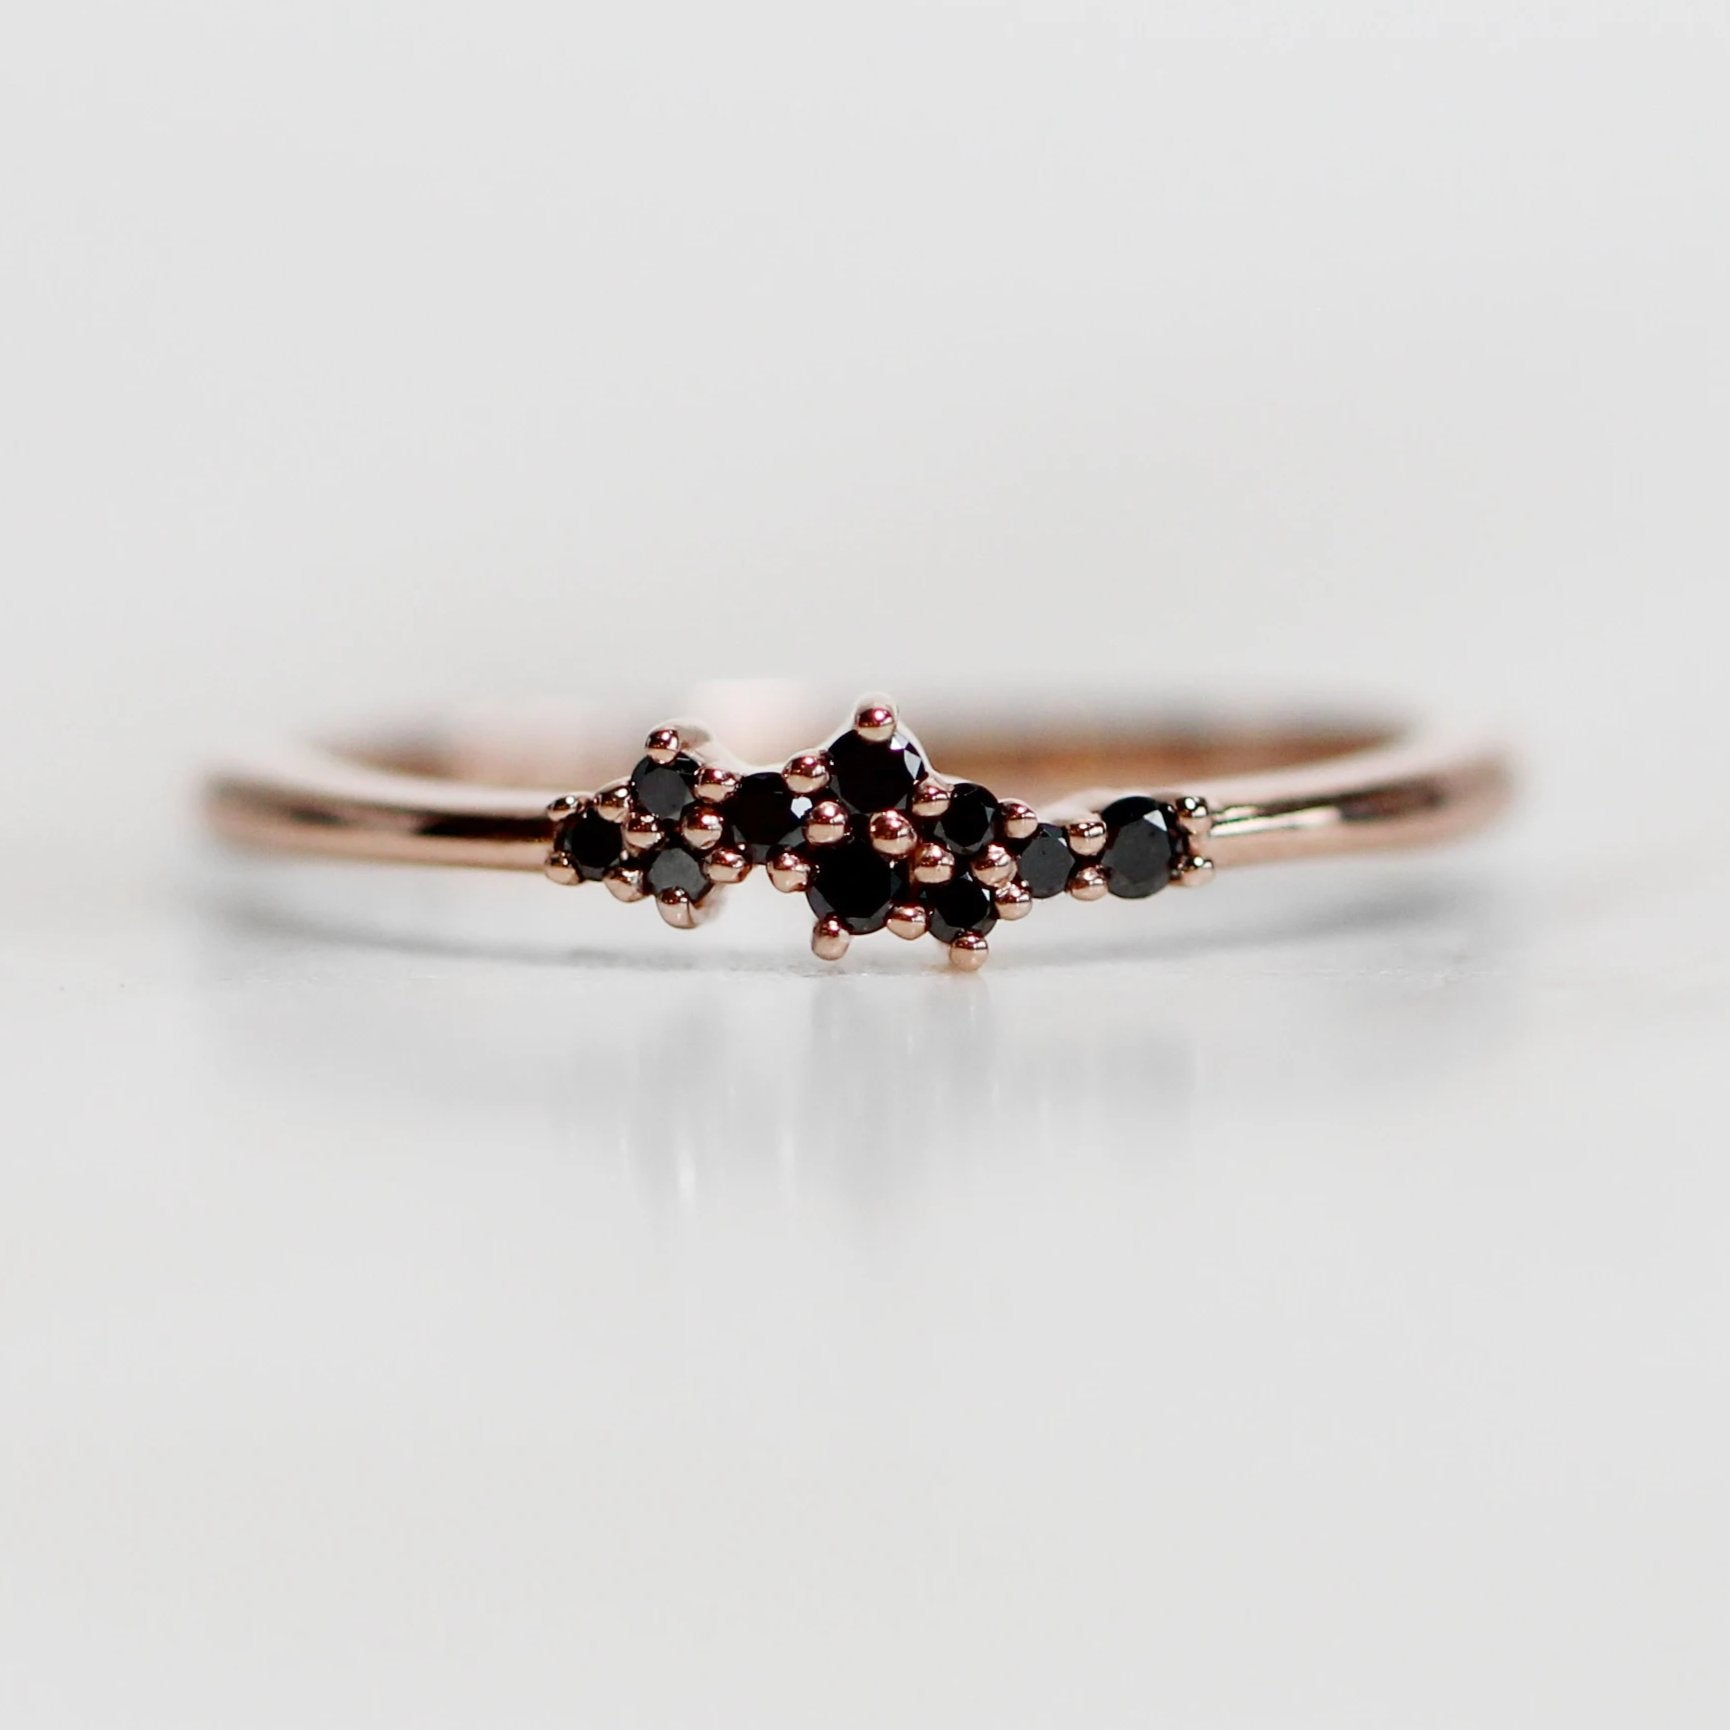 Fiona - Cluster style black diamond band - Midwinter Co. Alternative Bridal Rings and Modern Fine Jewelry